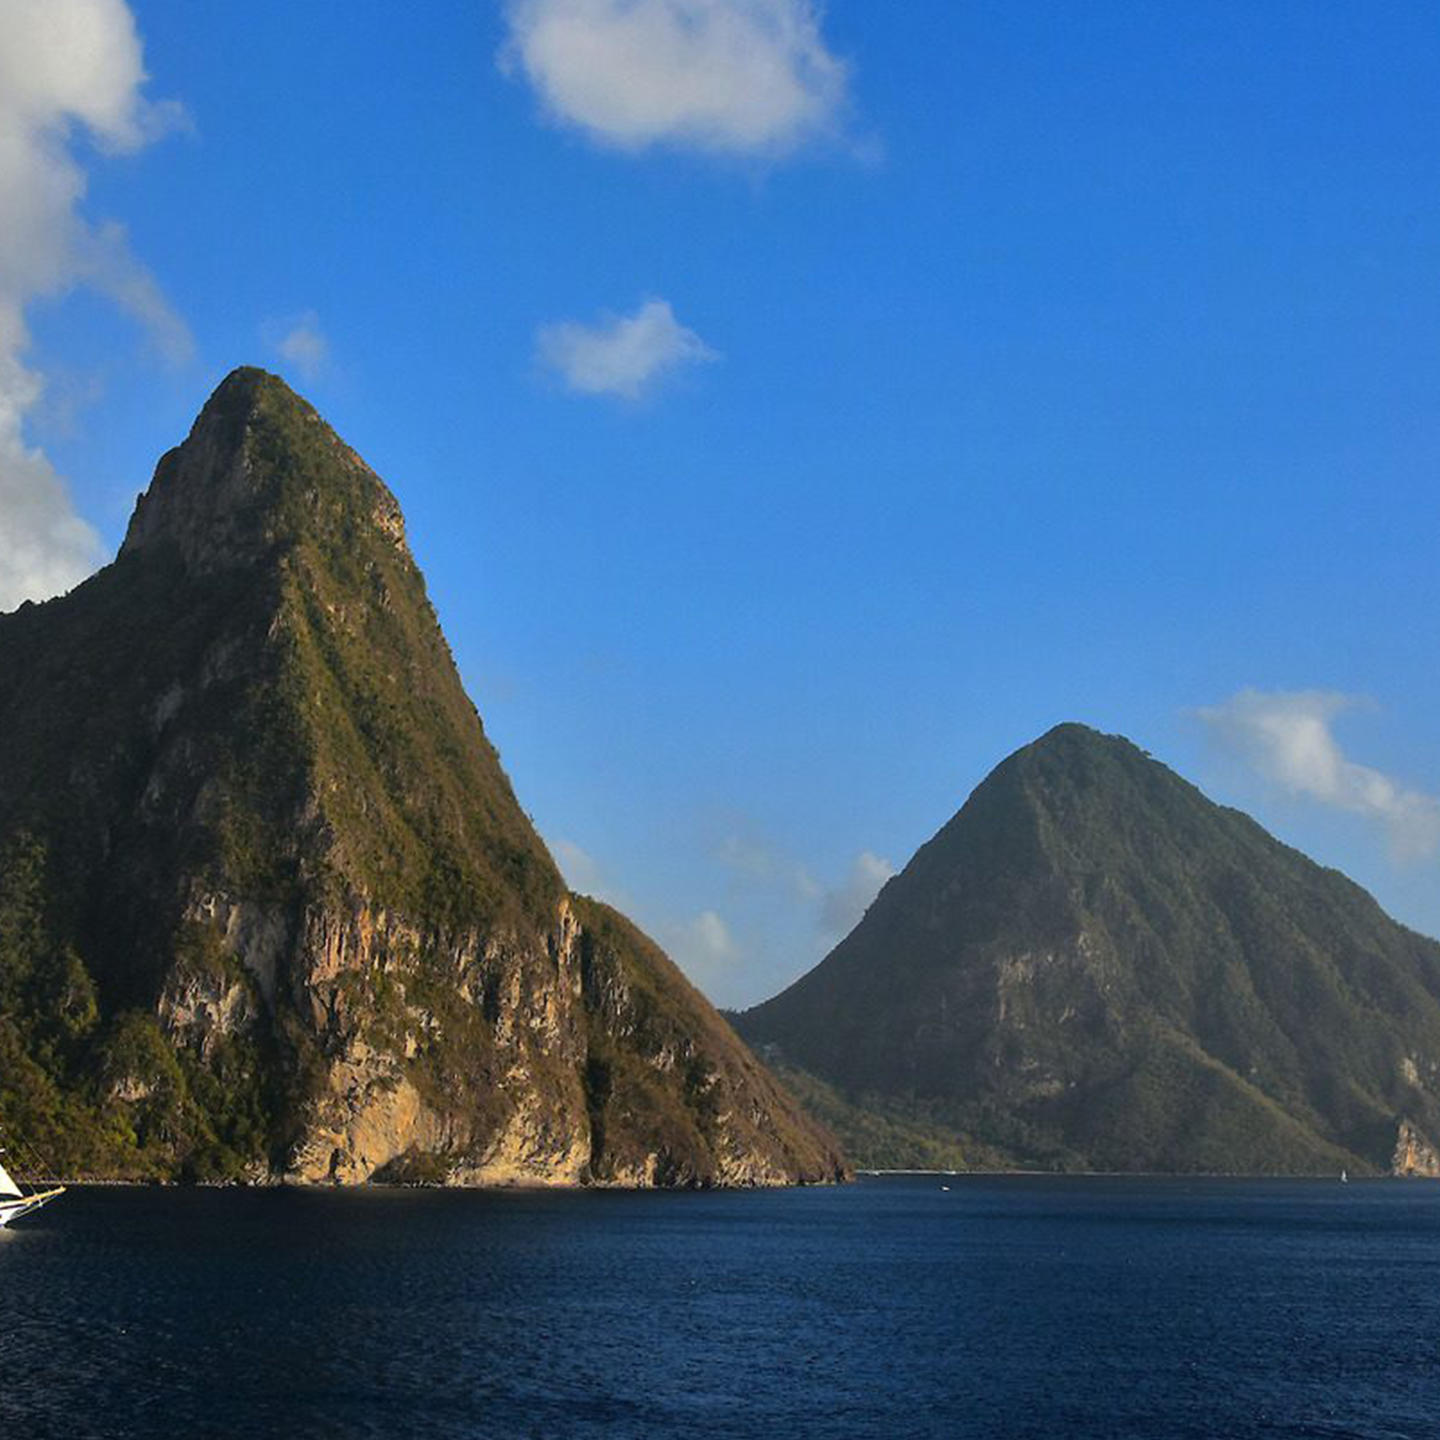 famous st. lucia mountains on ocean